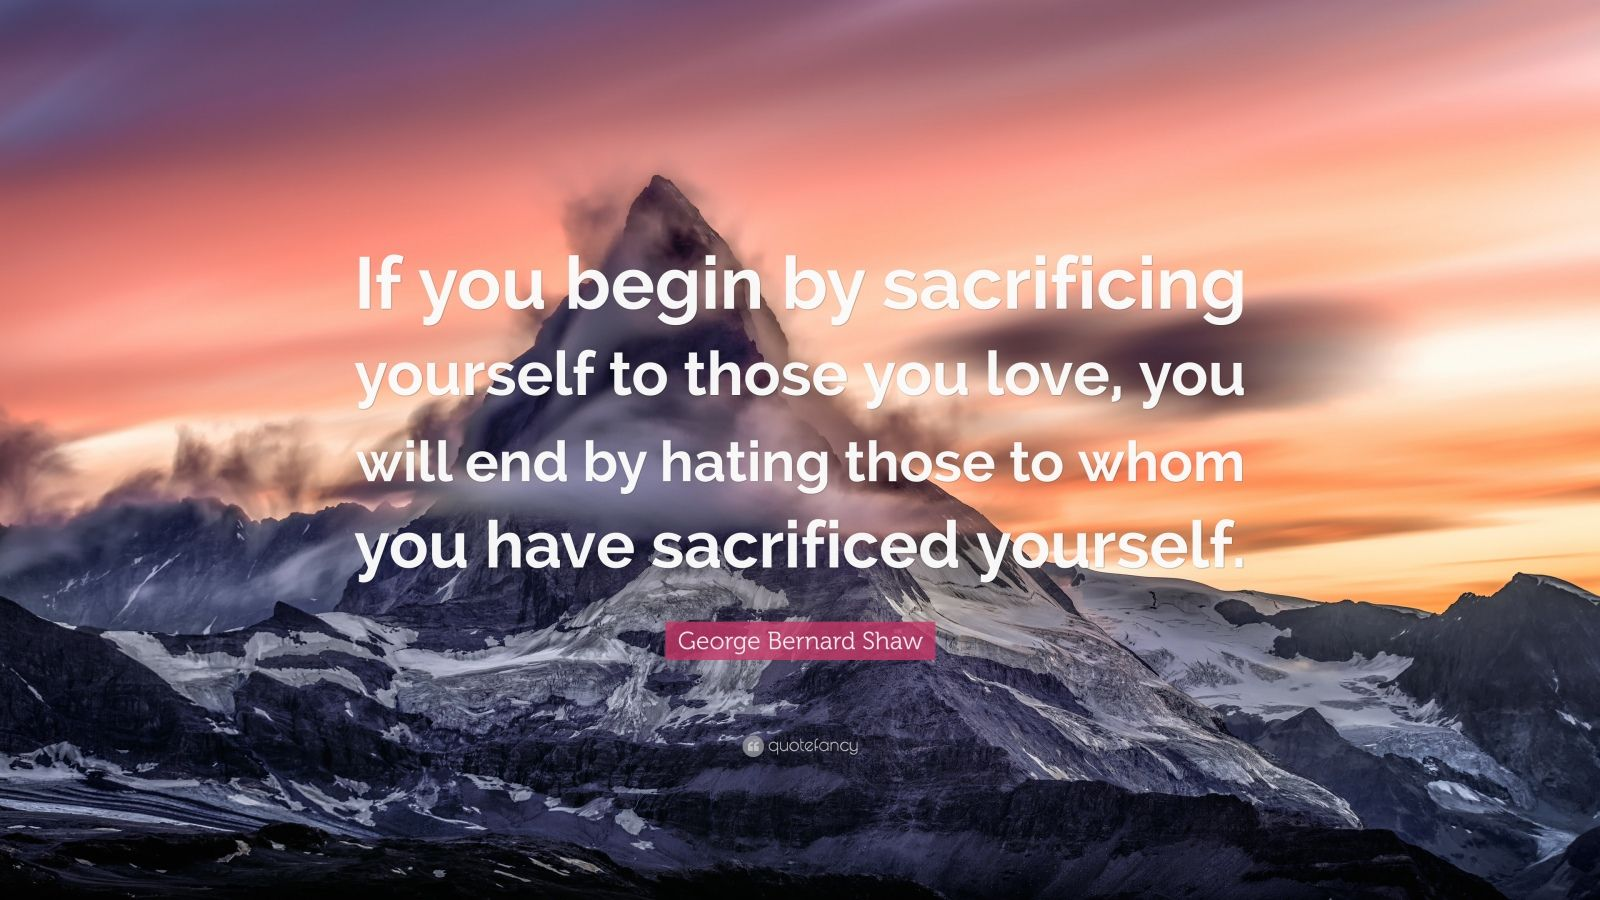 """George Bernard Shaw Quote: """"If you begin by sacrificing yourself to those you love, you will end by hating those to whom you have sacrificed yourself."""""""